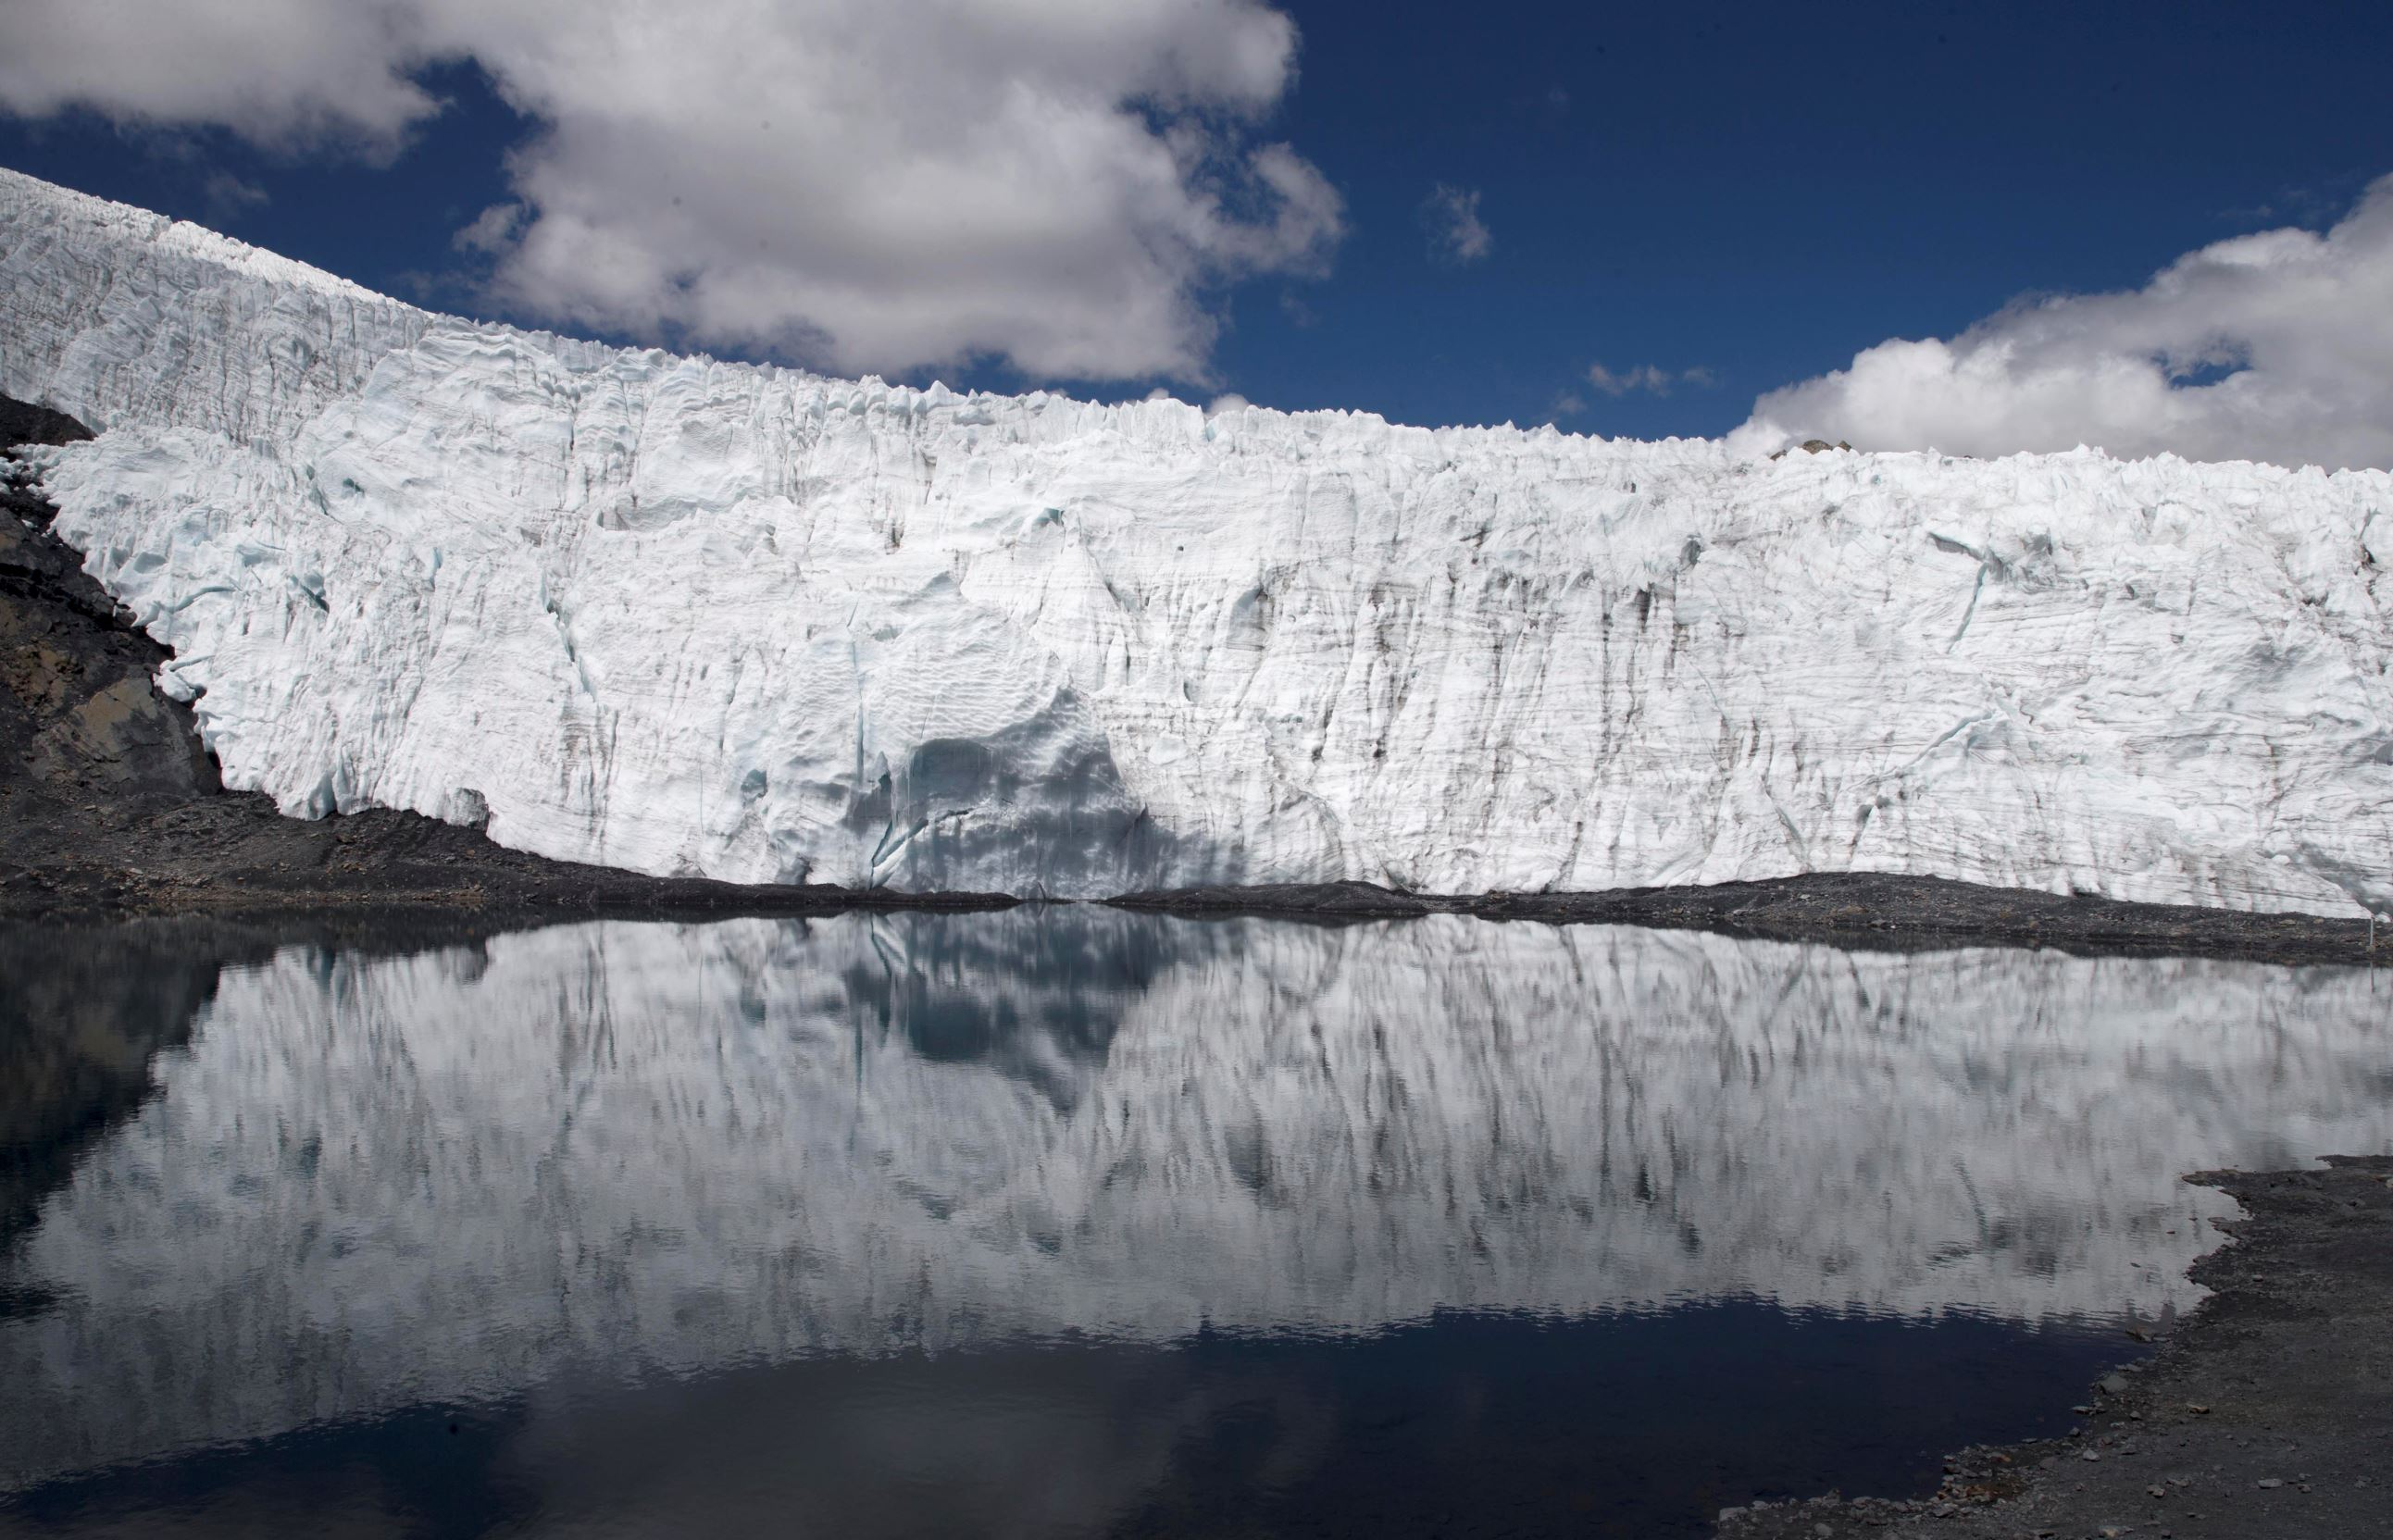 Слайд 70 из 86: In this Aug. 12, 2016 photo, the Pastoruri glacier is reflected in a lagoon in the Huascaran National Park in Huaraz, Peru. Glacial lakes are often pretty fragile structures, created when rocks and rubble carried by a glacier form a moraine that dams up